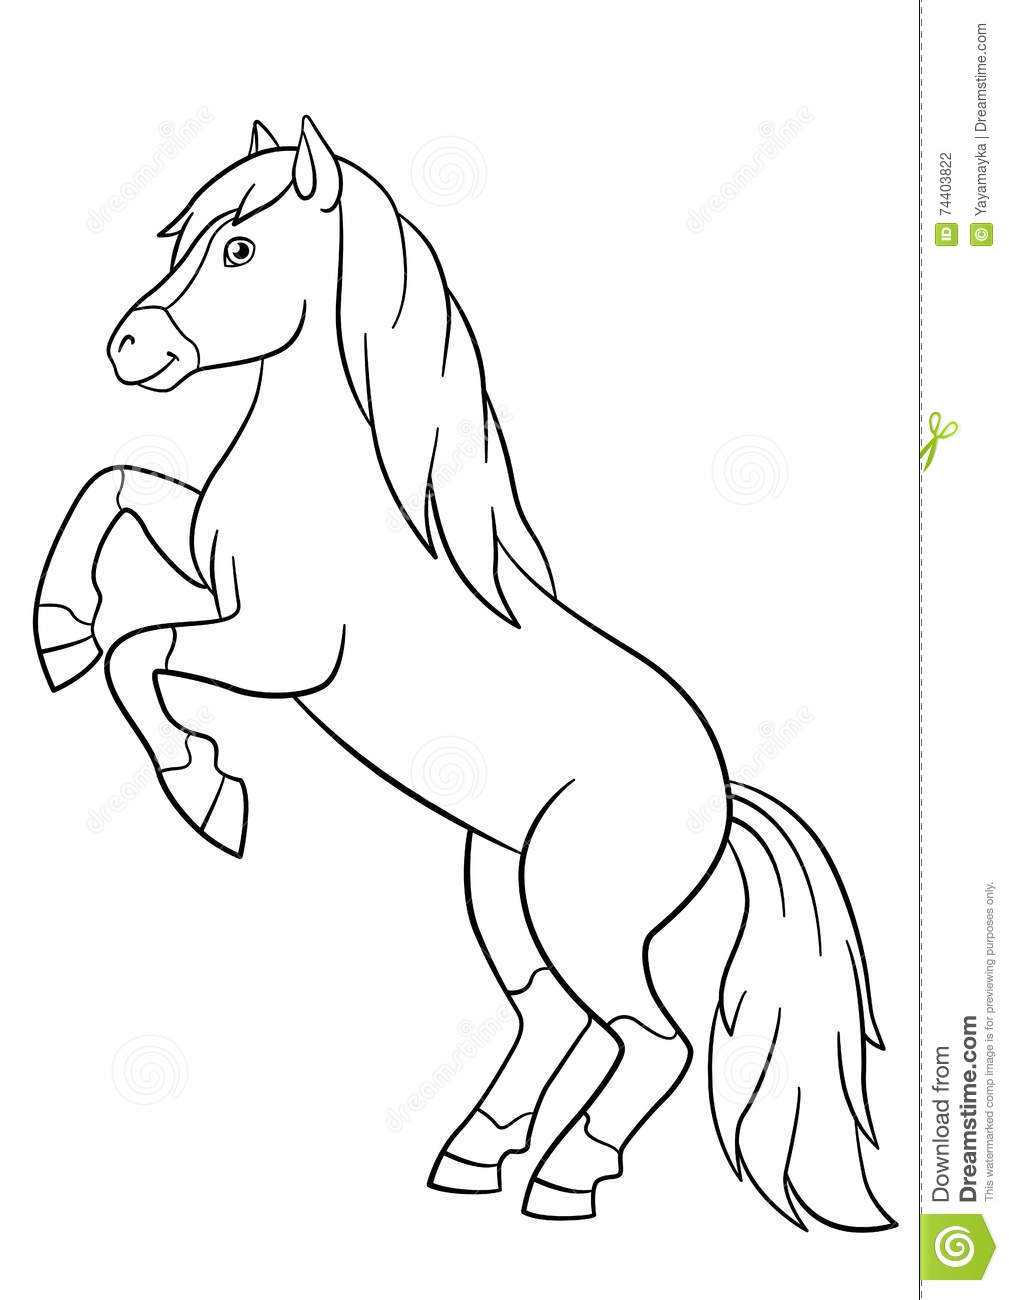 Coloring Pages. Farm Animals. Beautiful Horse. Stock Vector ...